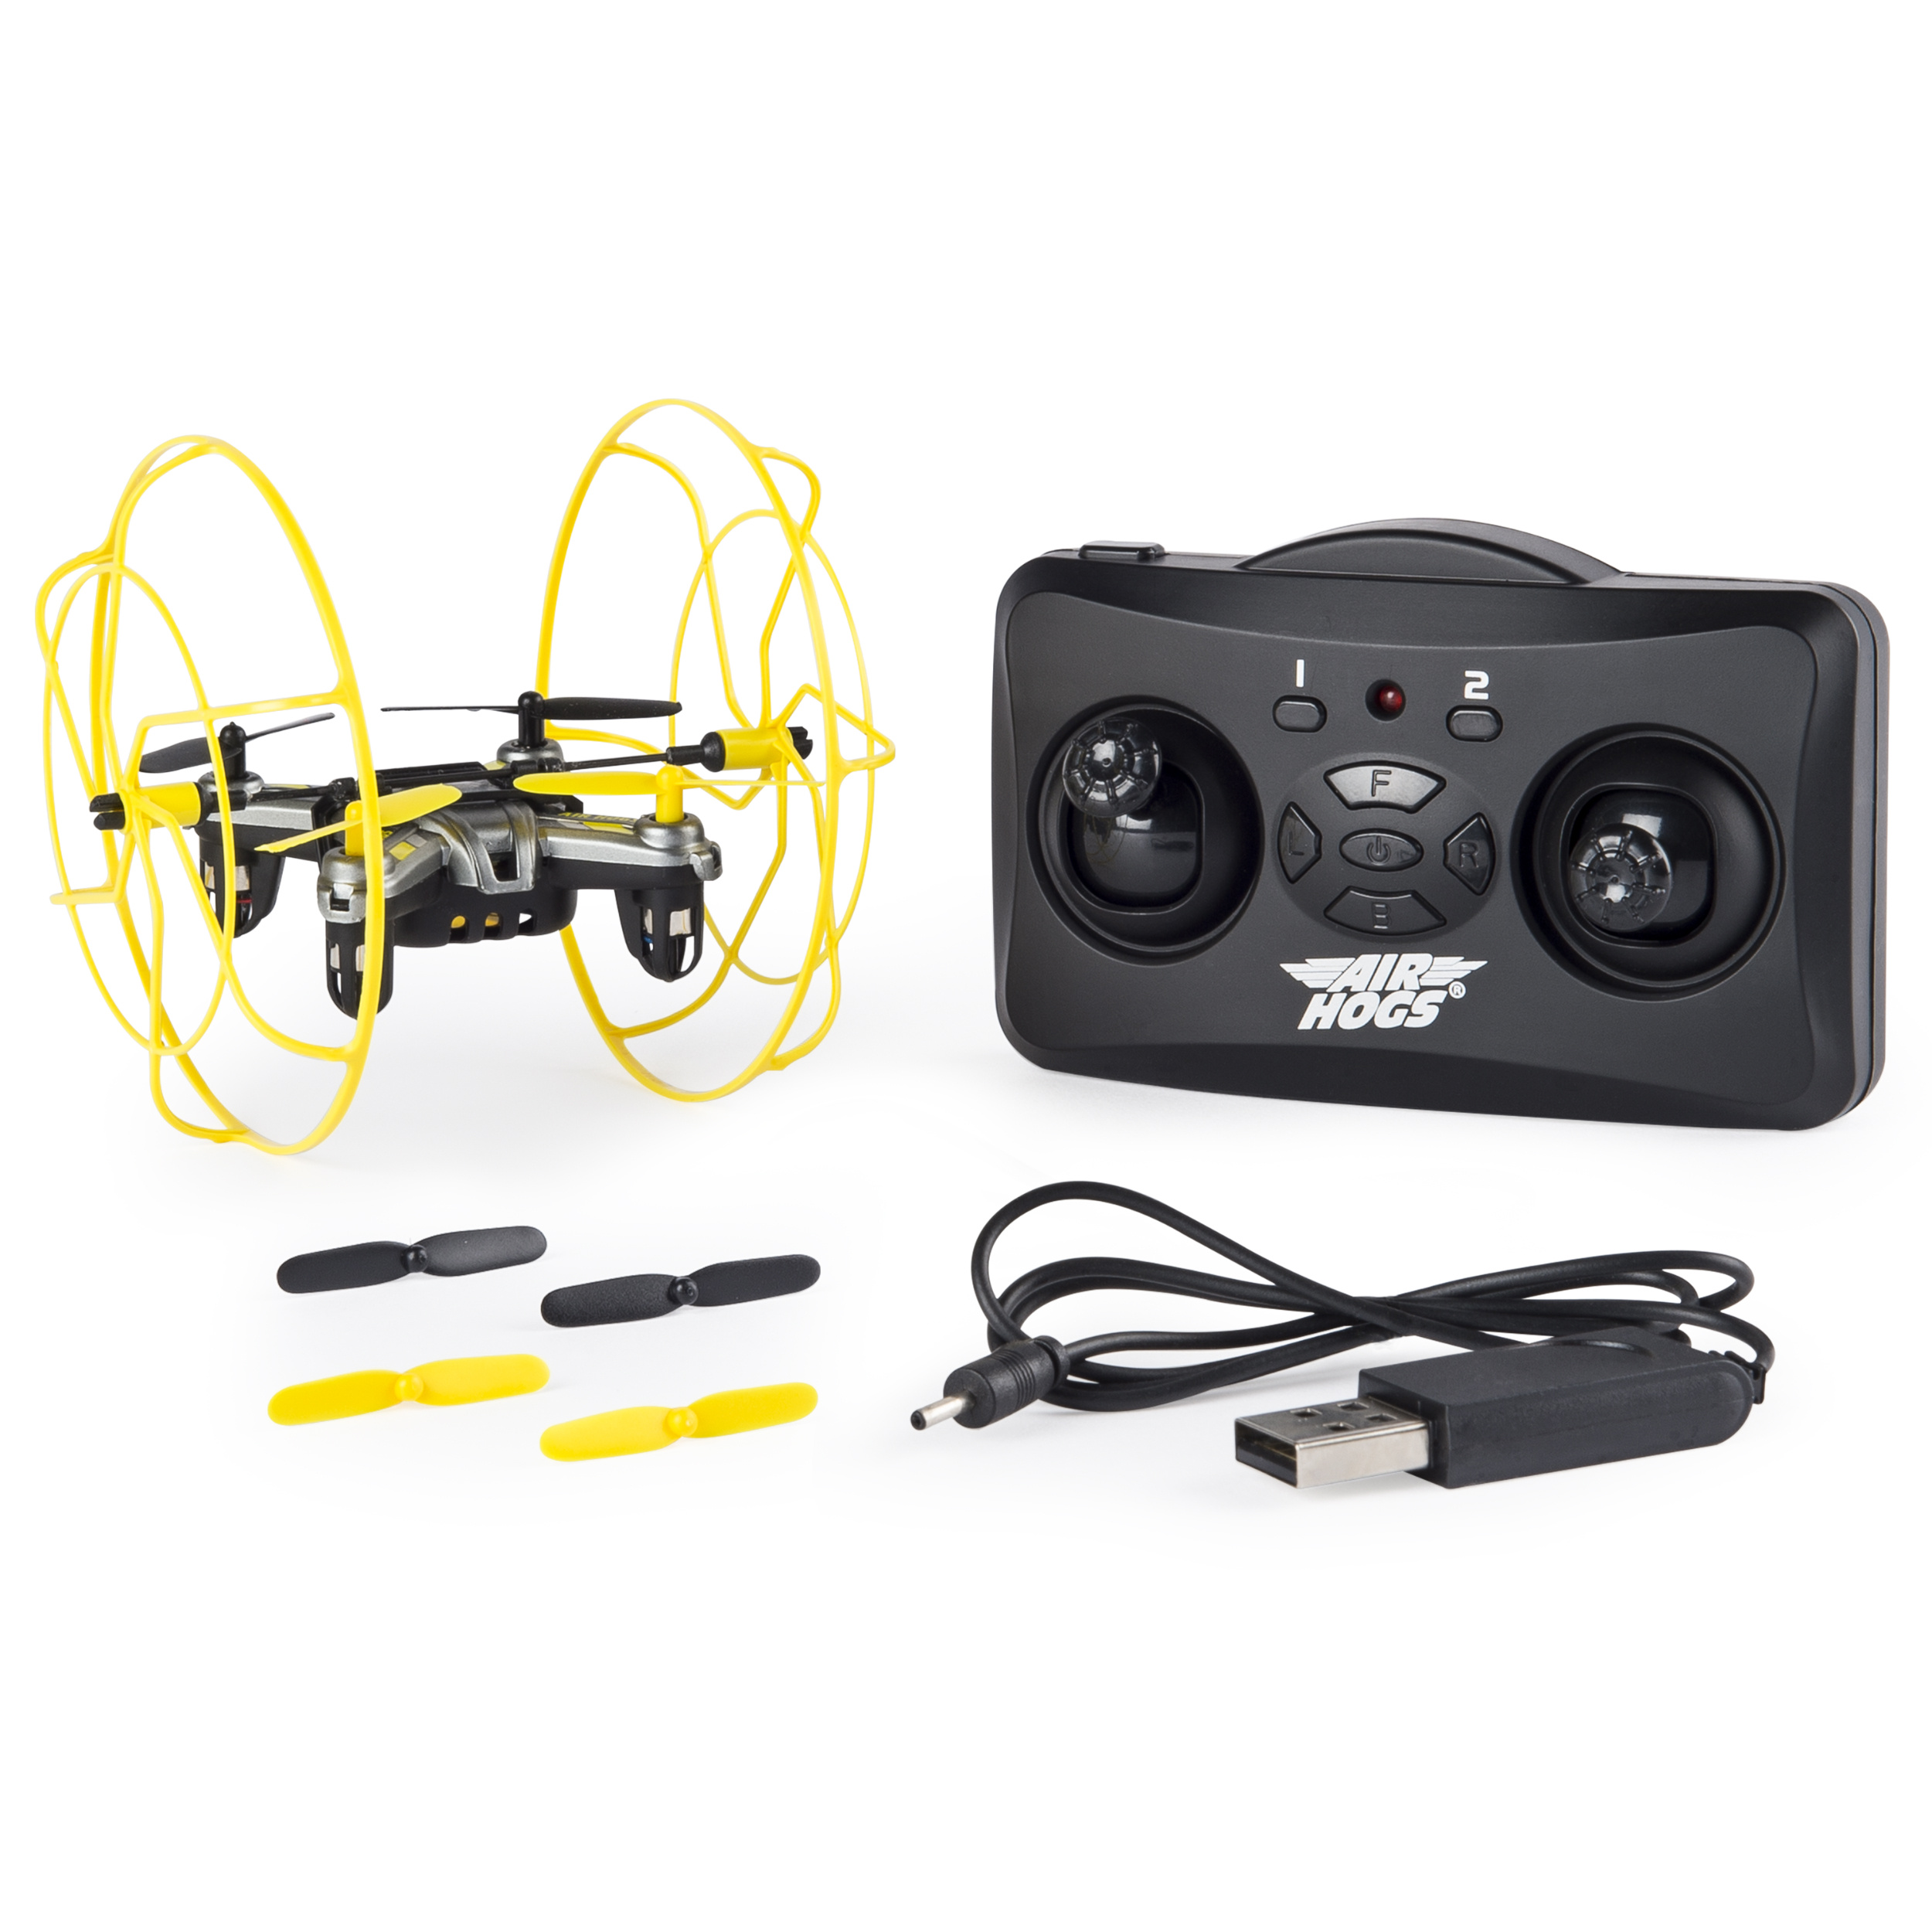 Air Hogs - Hyper Stunt Drone - Unstoppable Micro RC Drone - Yellow